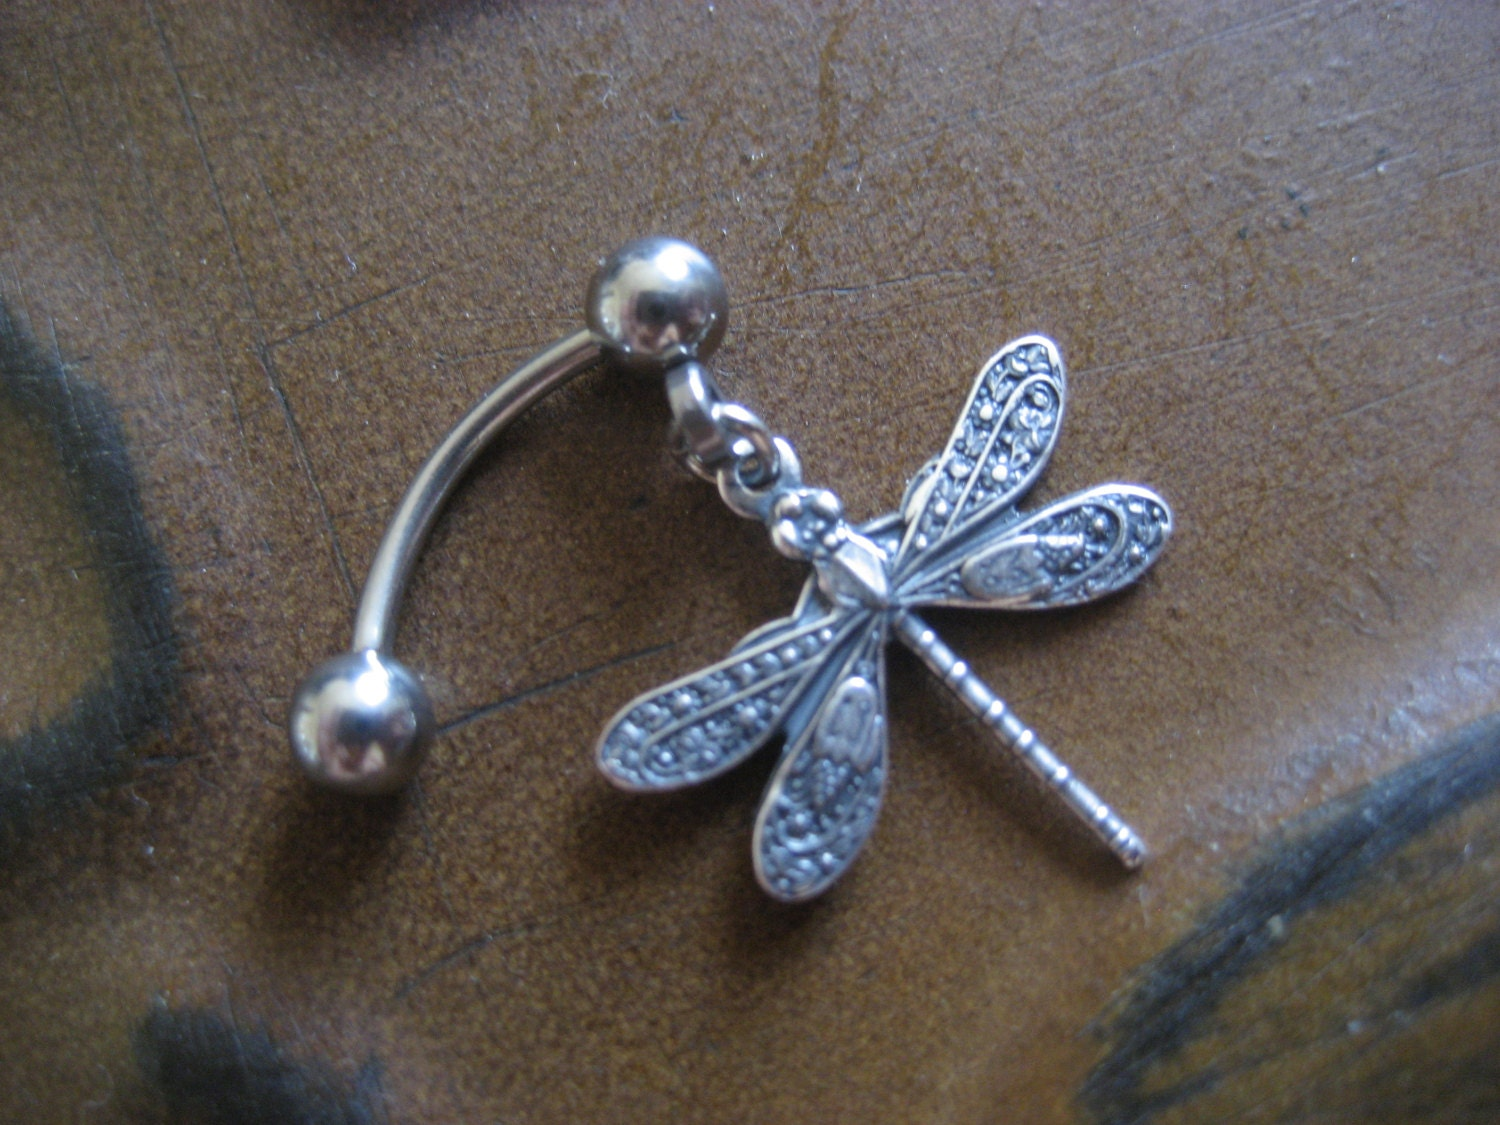 Tiny Dragonfly Rook Eyebrow Ring Piercing Jewelry Earring